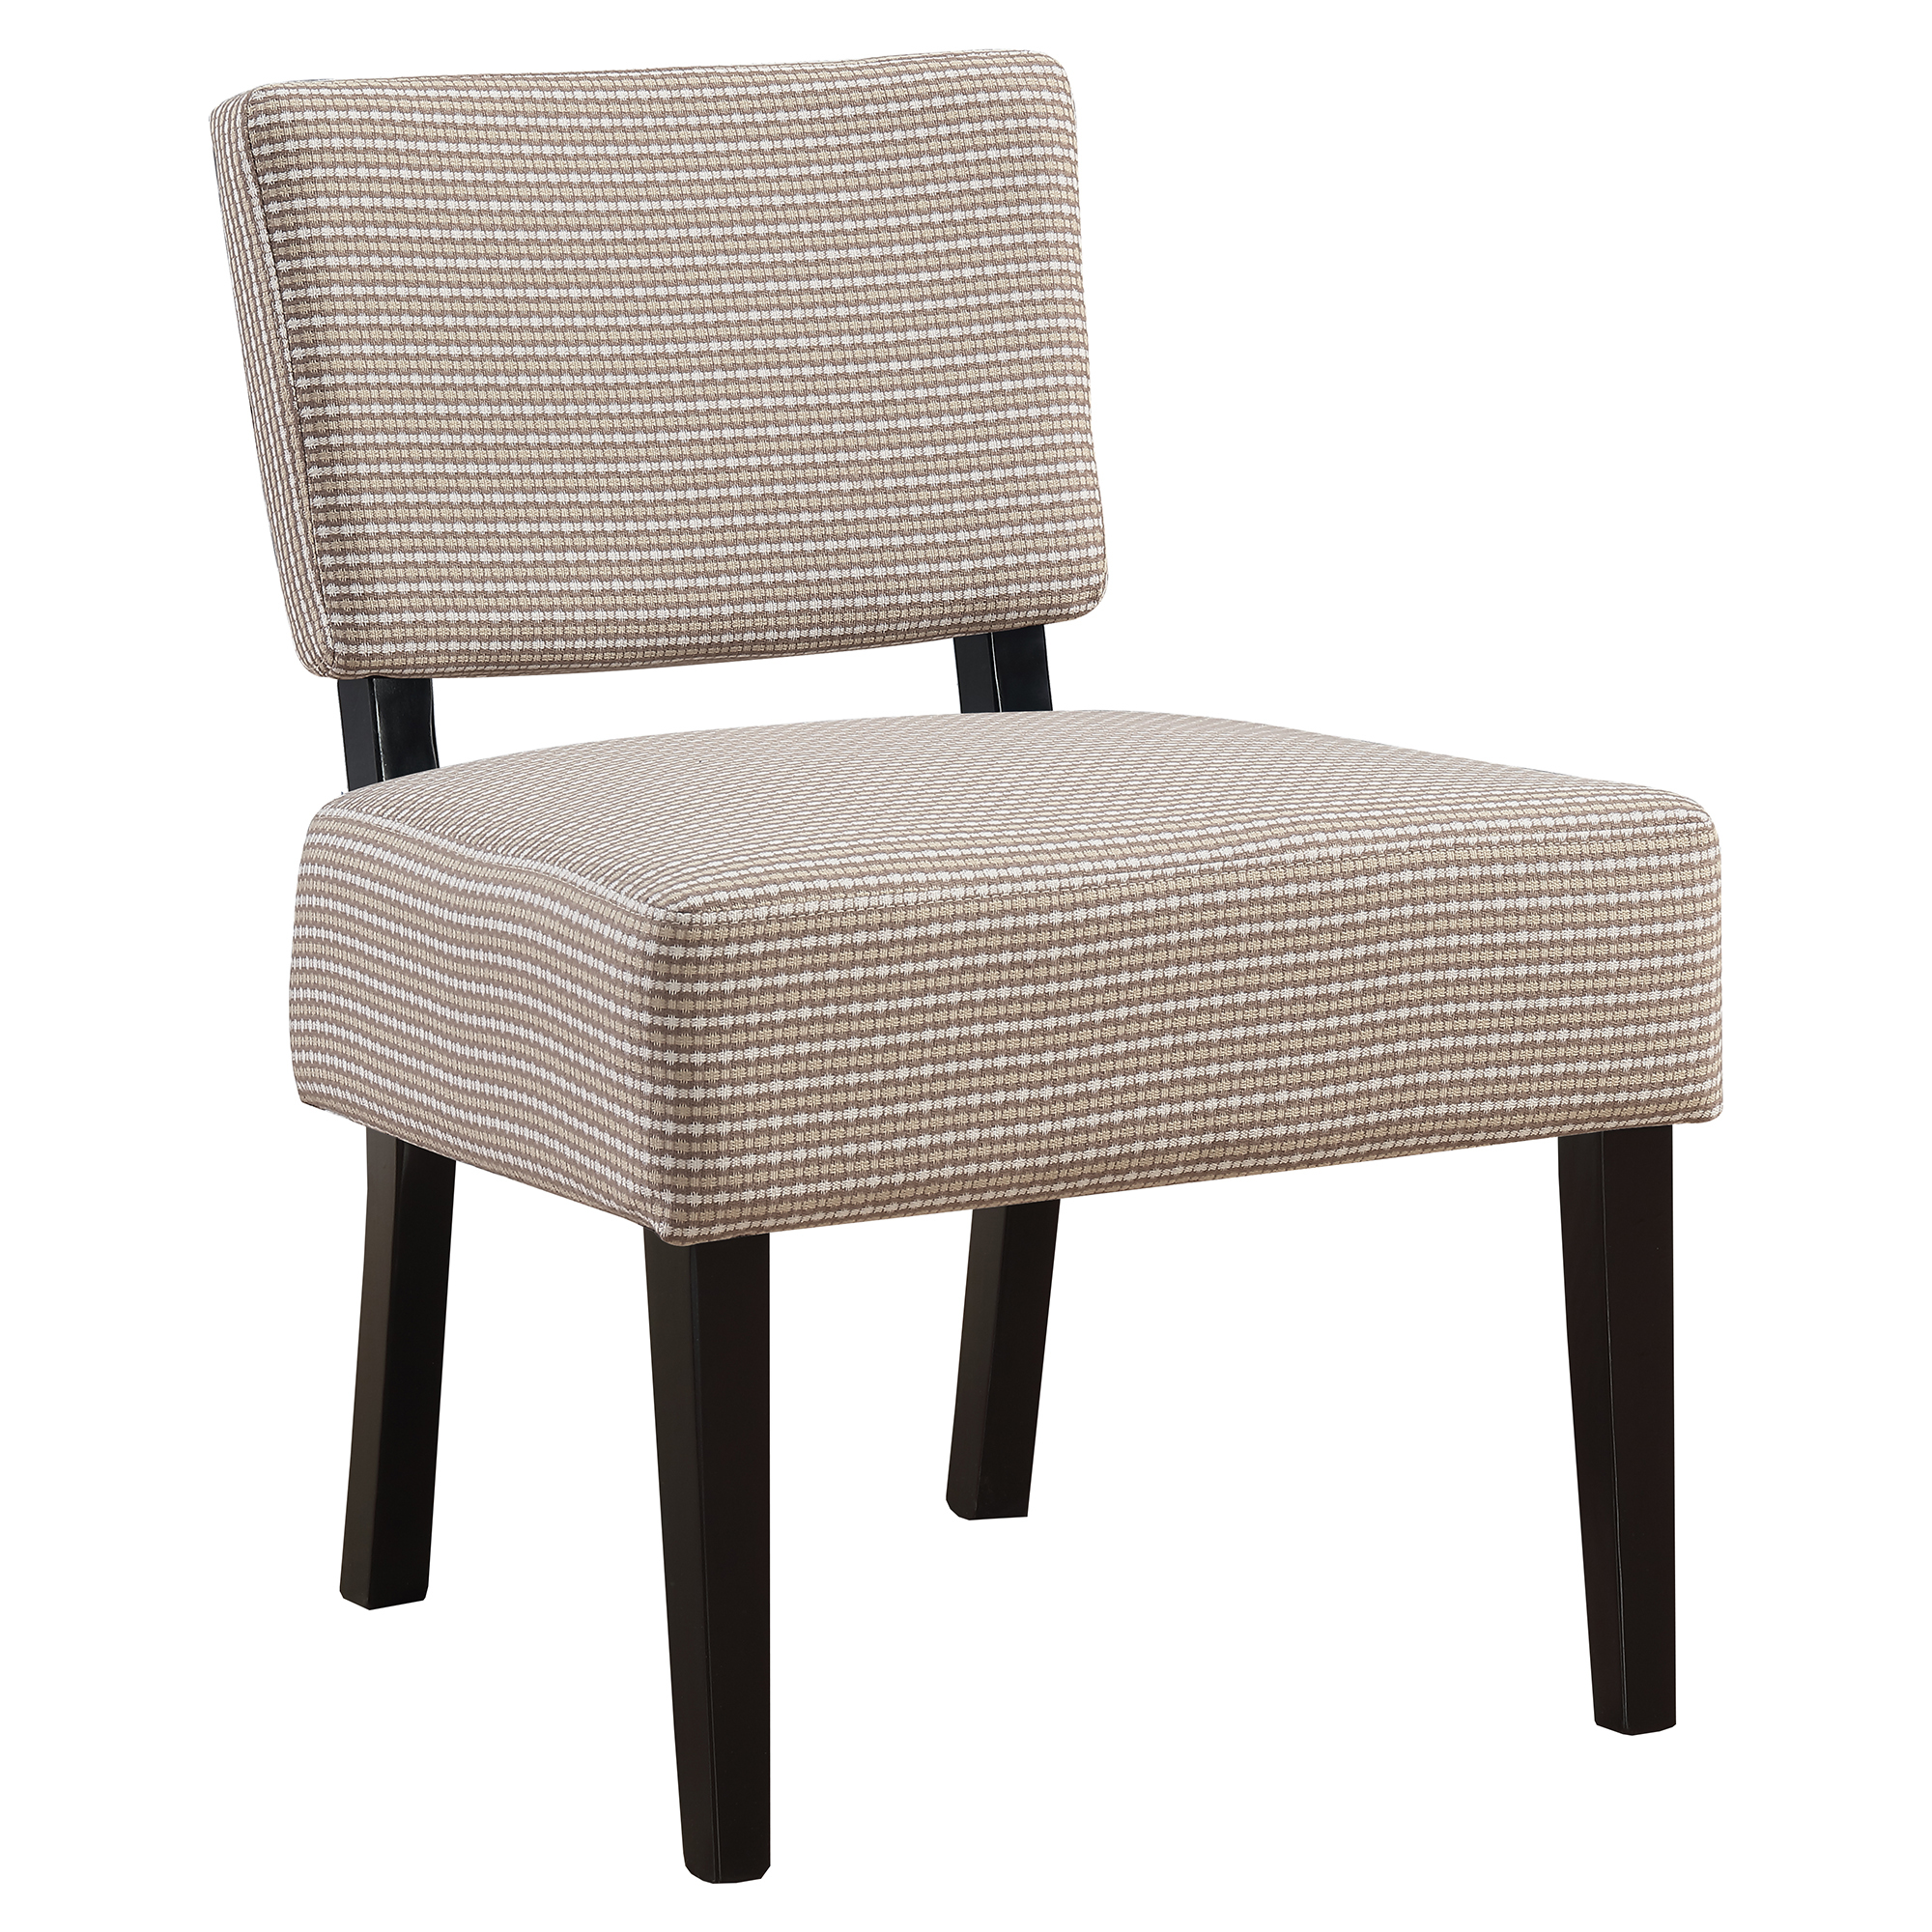 ACCENT CHAIR - LIGHT / DARK TAUPE ABSTRACT DOT FABRIC